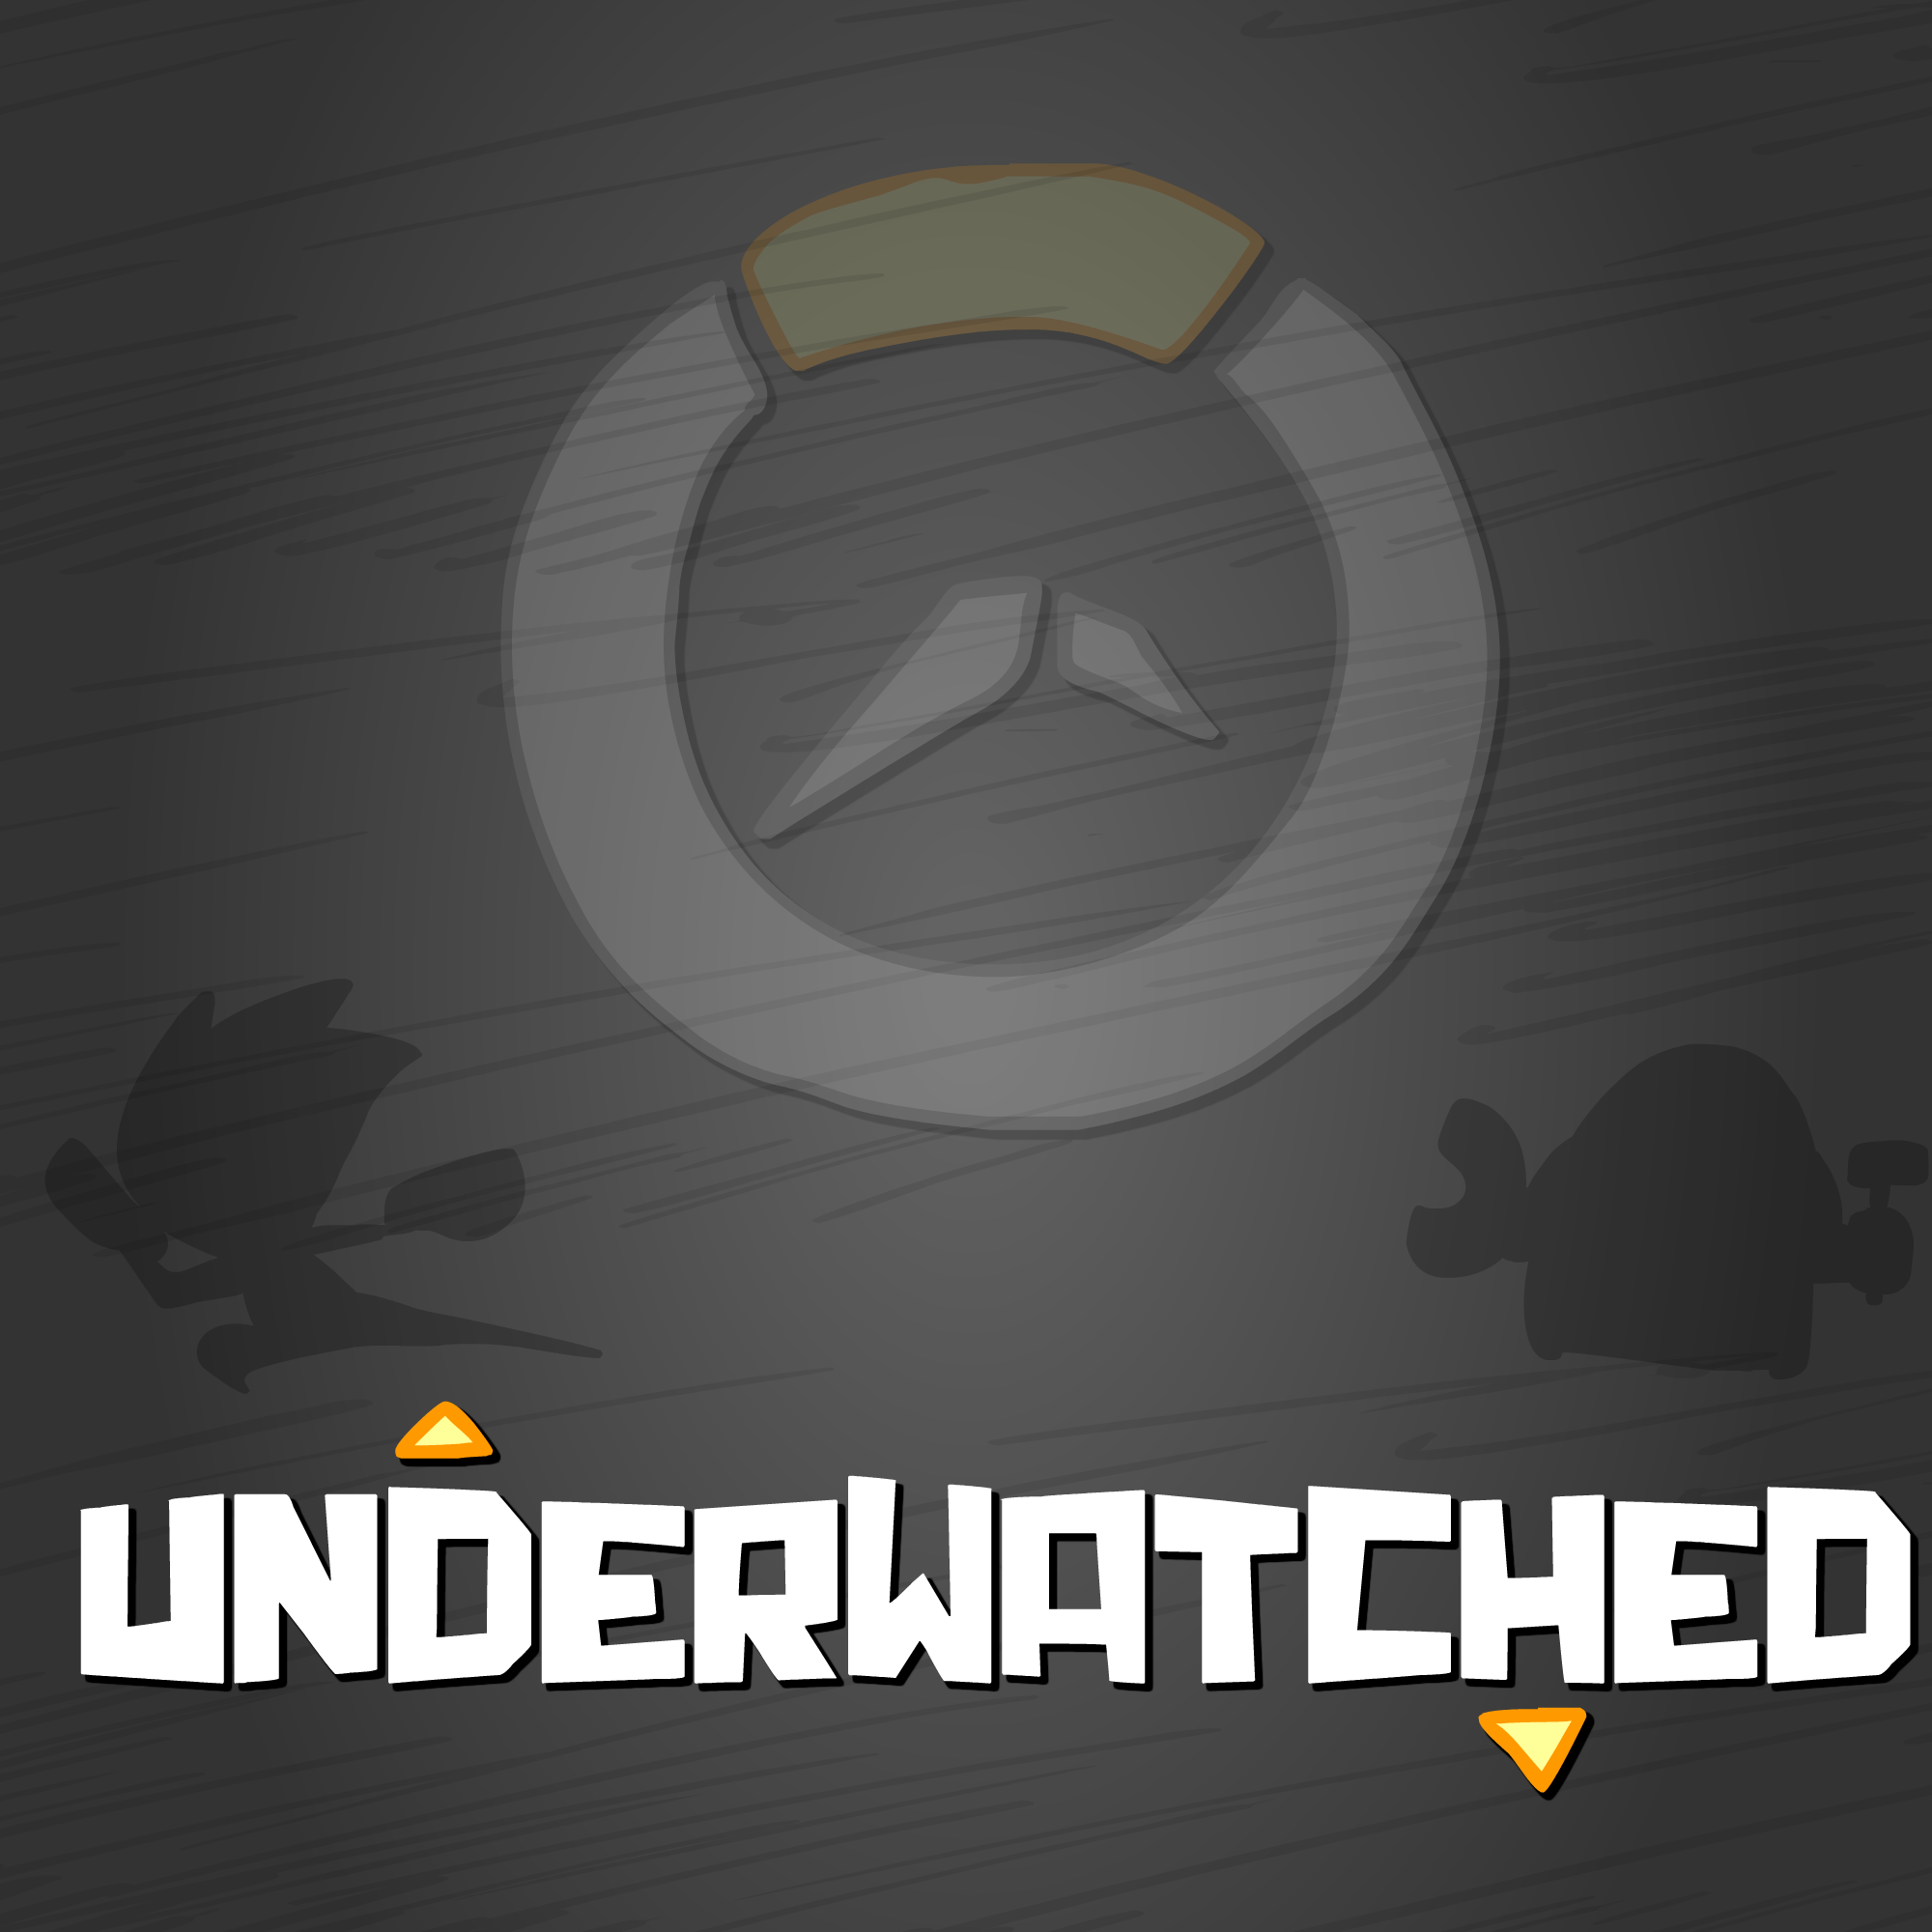 UNDERWATCHED: click the image above to watch